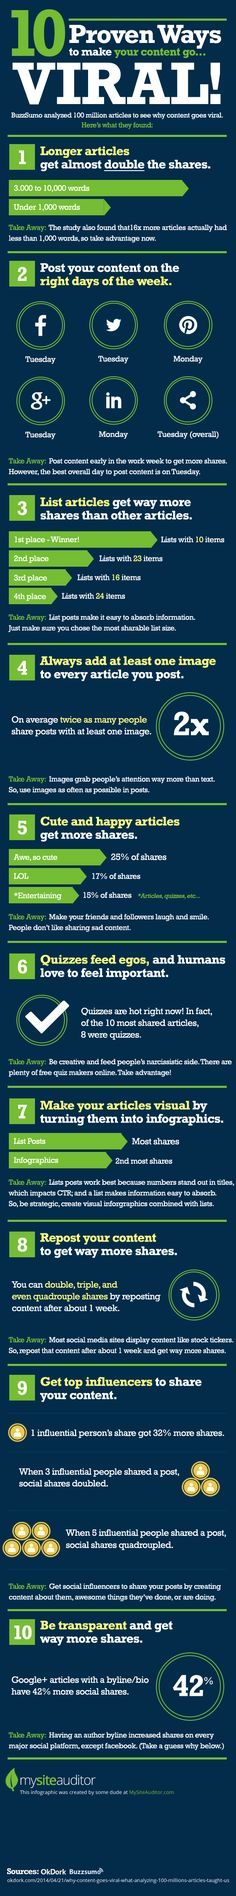 10 Proven Ways to Make Content Go Viral #infographic